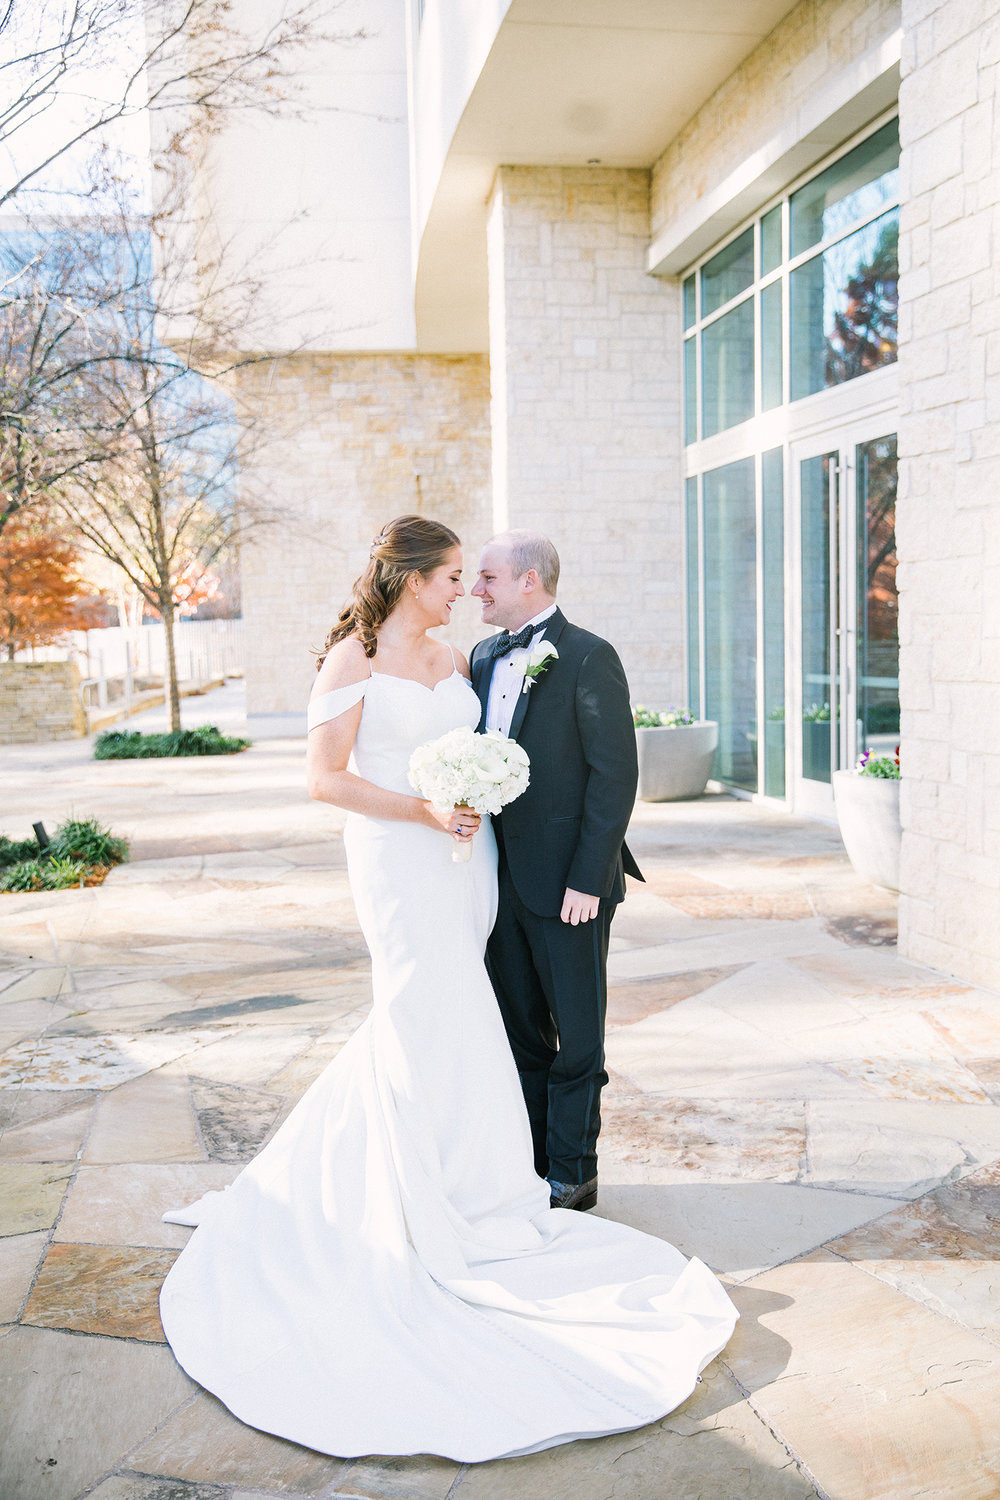 Plano North Dallas Wedding Planner - Allday Events - Hilton Granite Park - 159.jpg